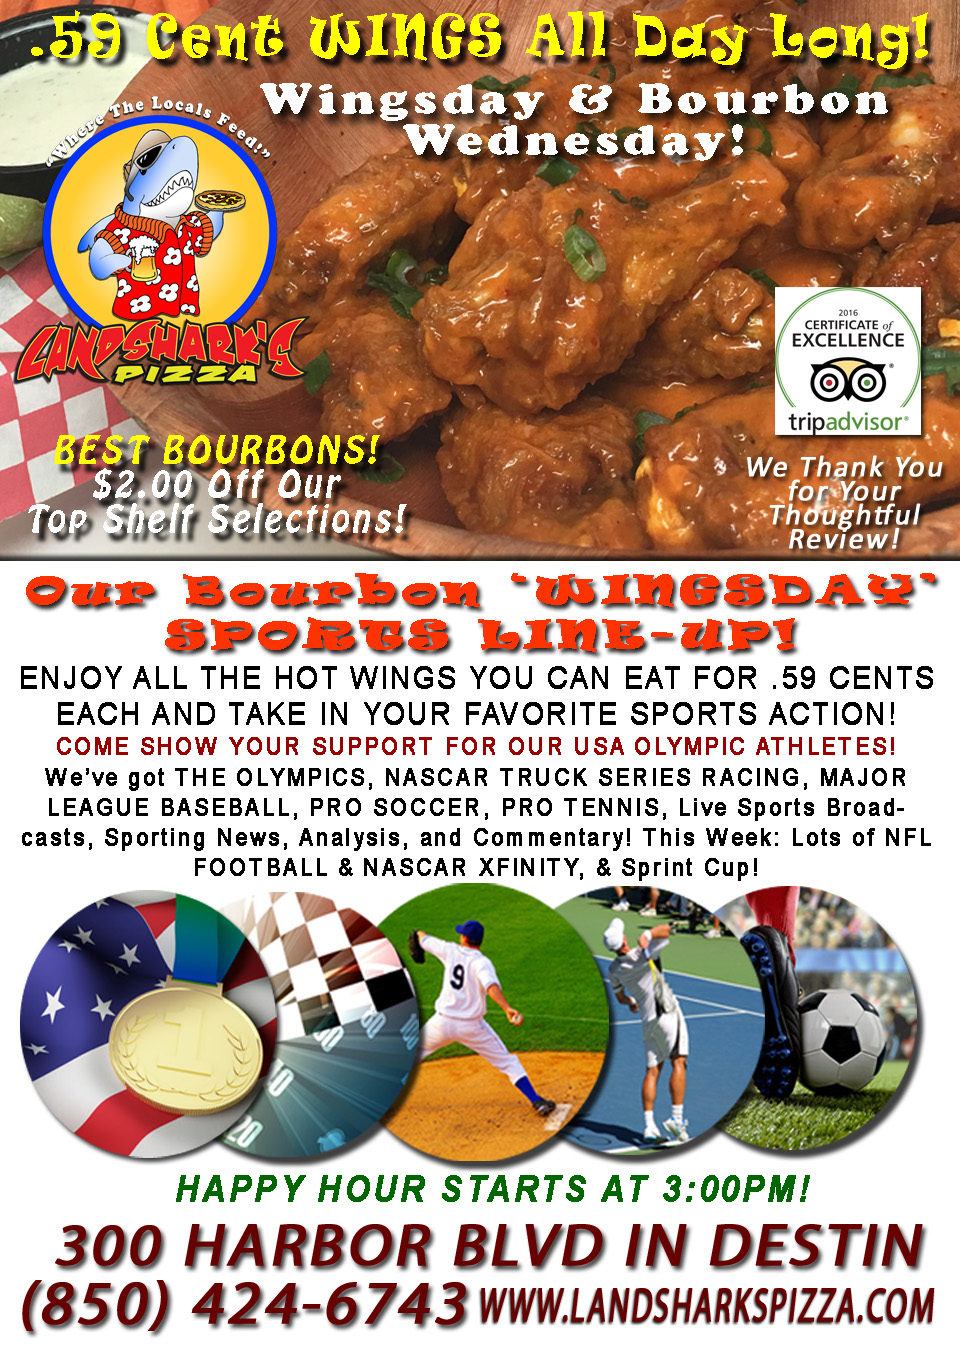 Award-Winning Wings in Destin FL only 59 Cents Wingsday Landsharks Pizza